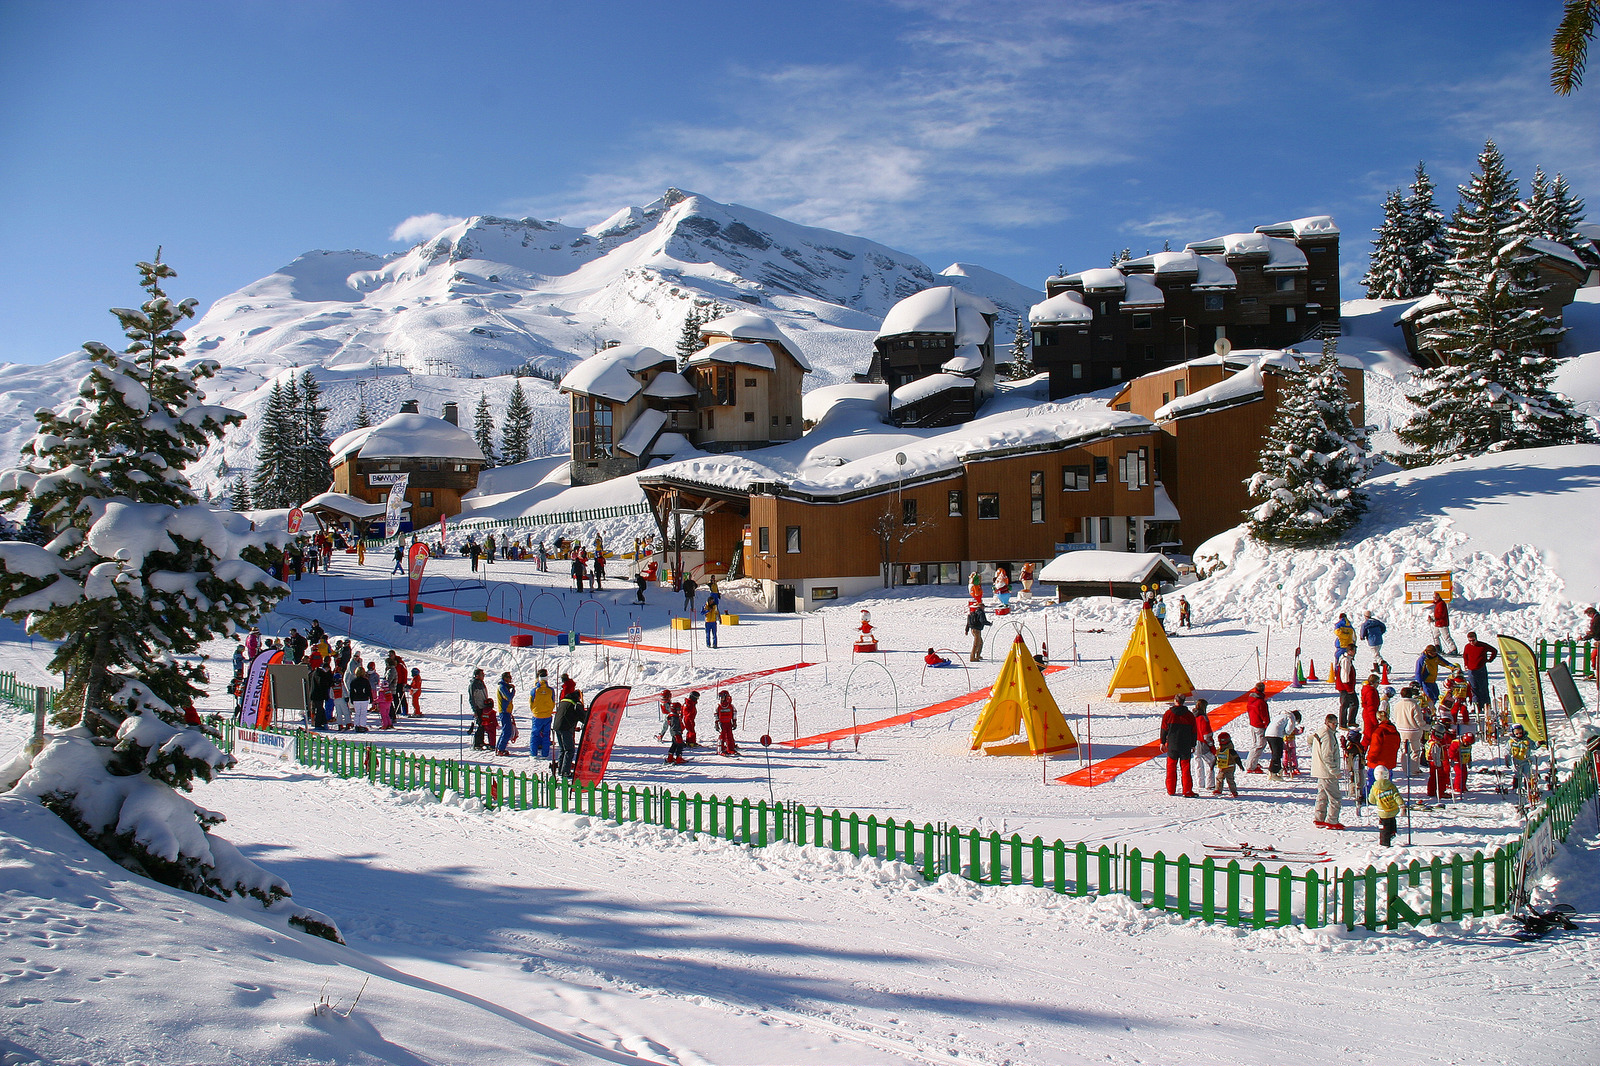 France has the highest number of ski resorts